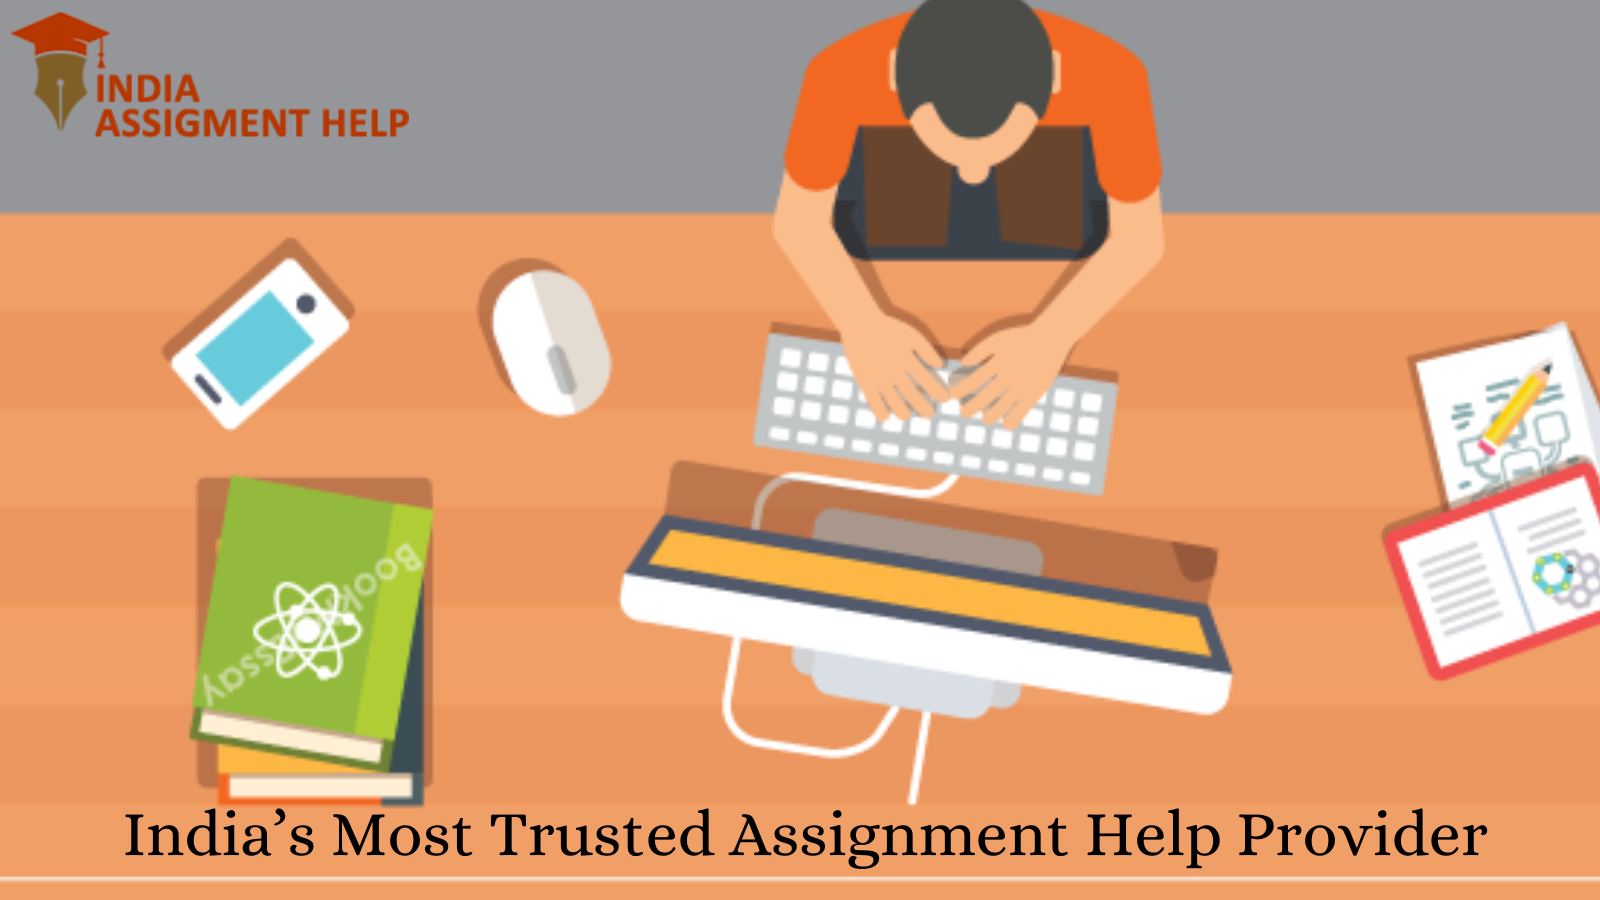 India's Most Trusted Assignment Help Provider